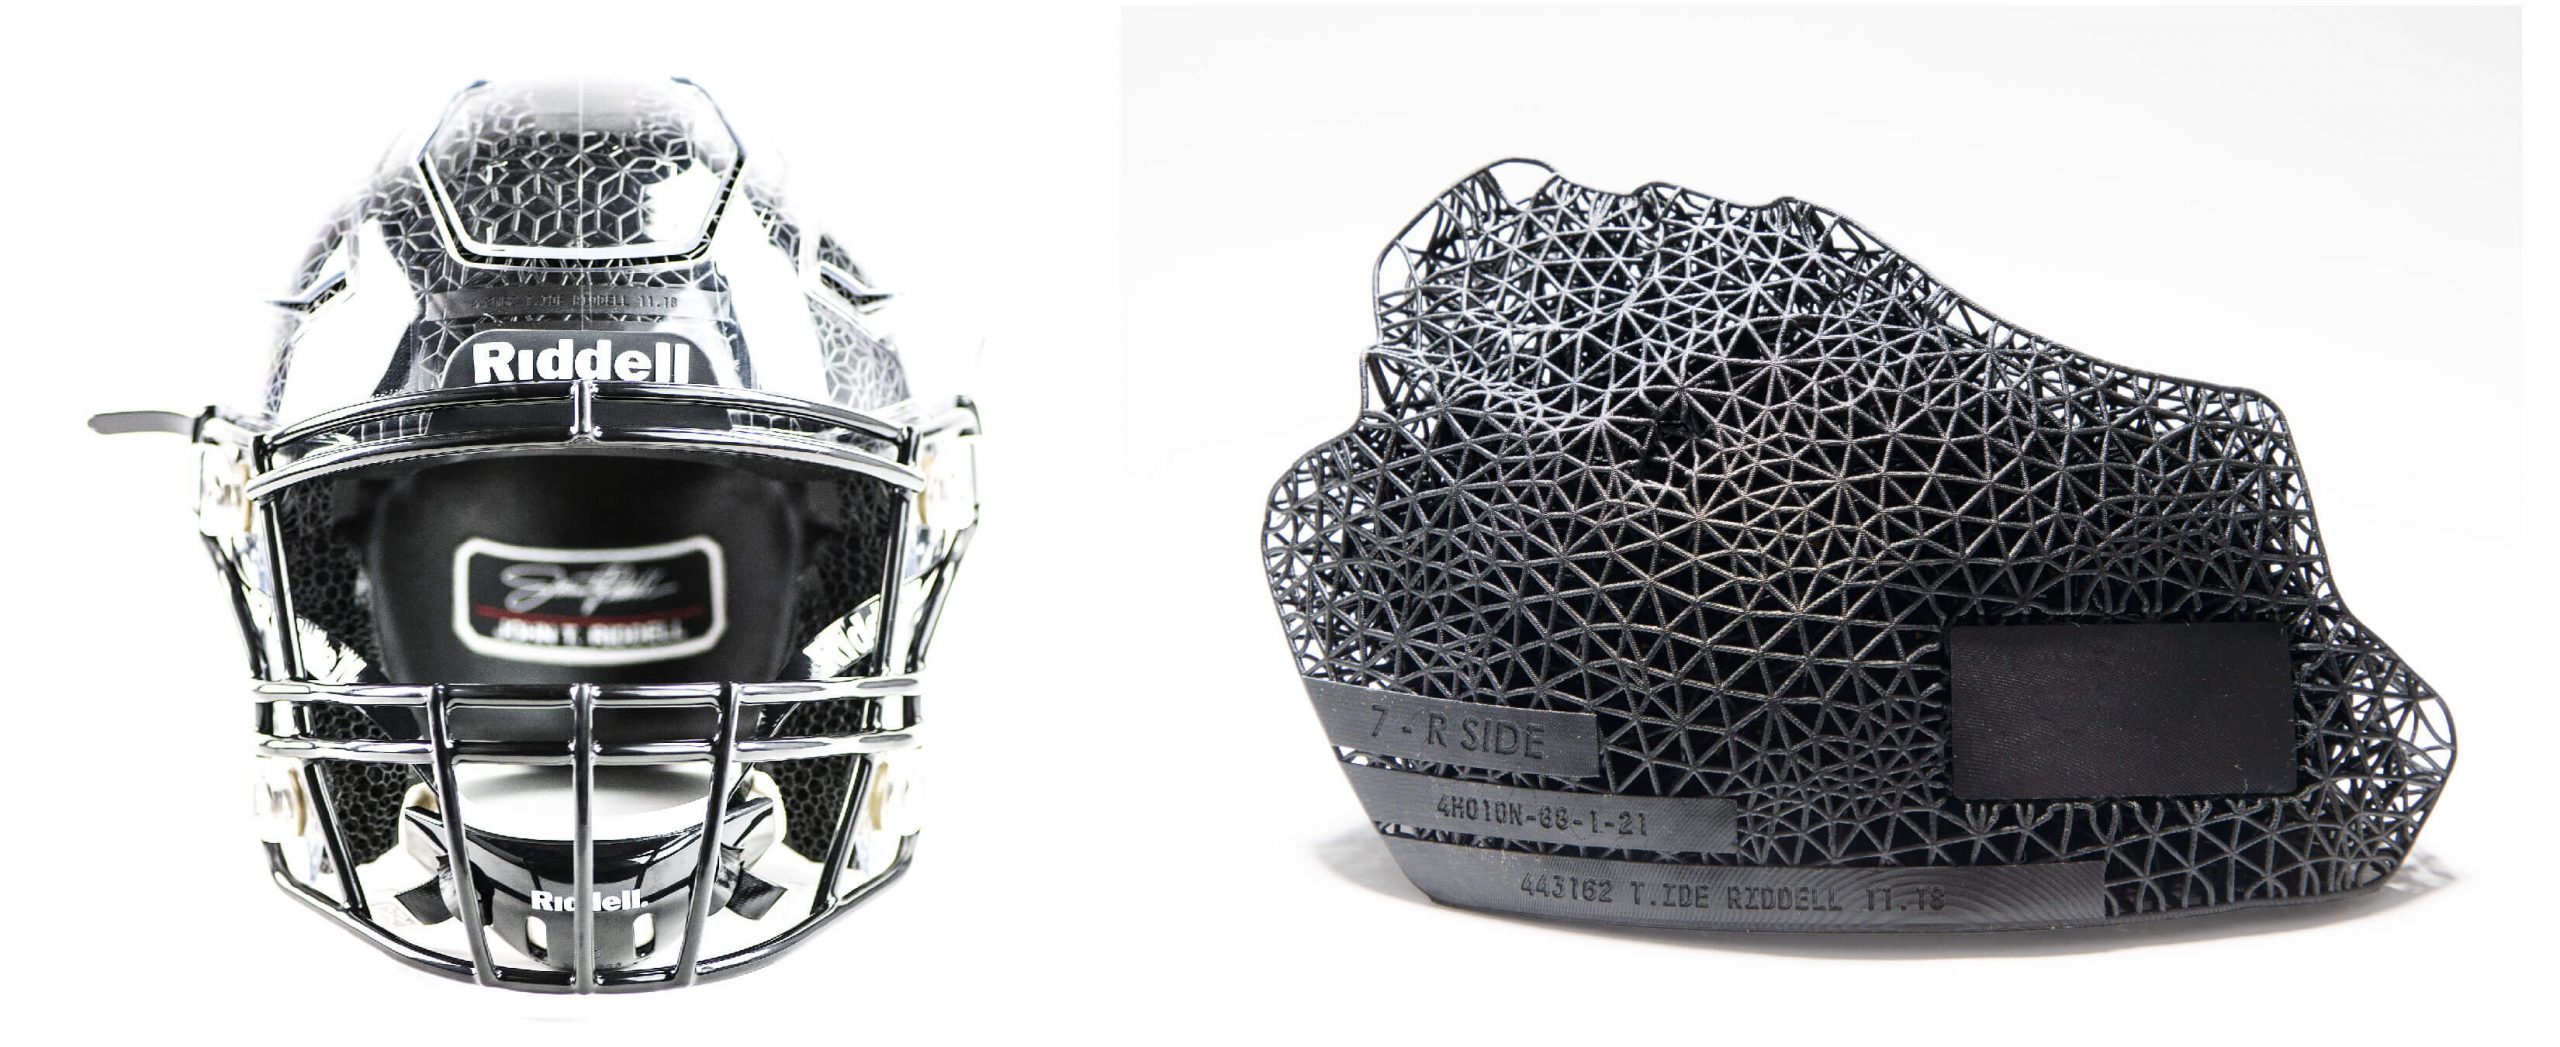 A Riddell helmet and an individual pad with an outer layer of strut latticing over a gyroid lattice interior